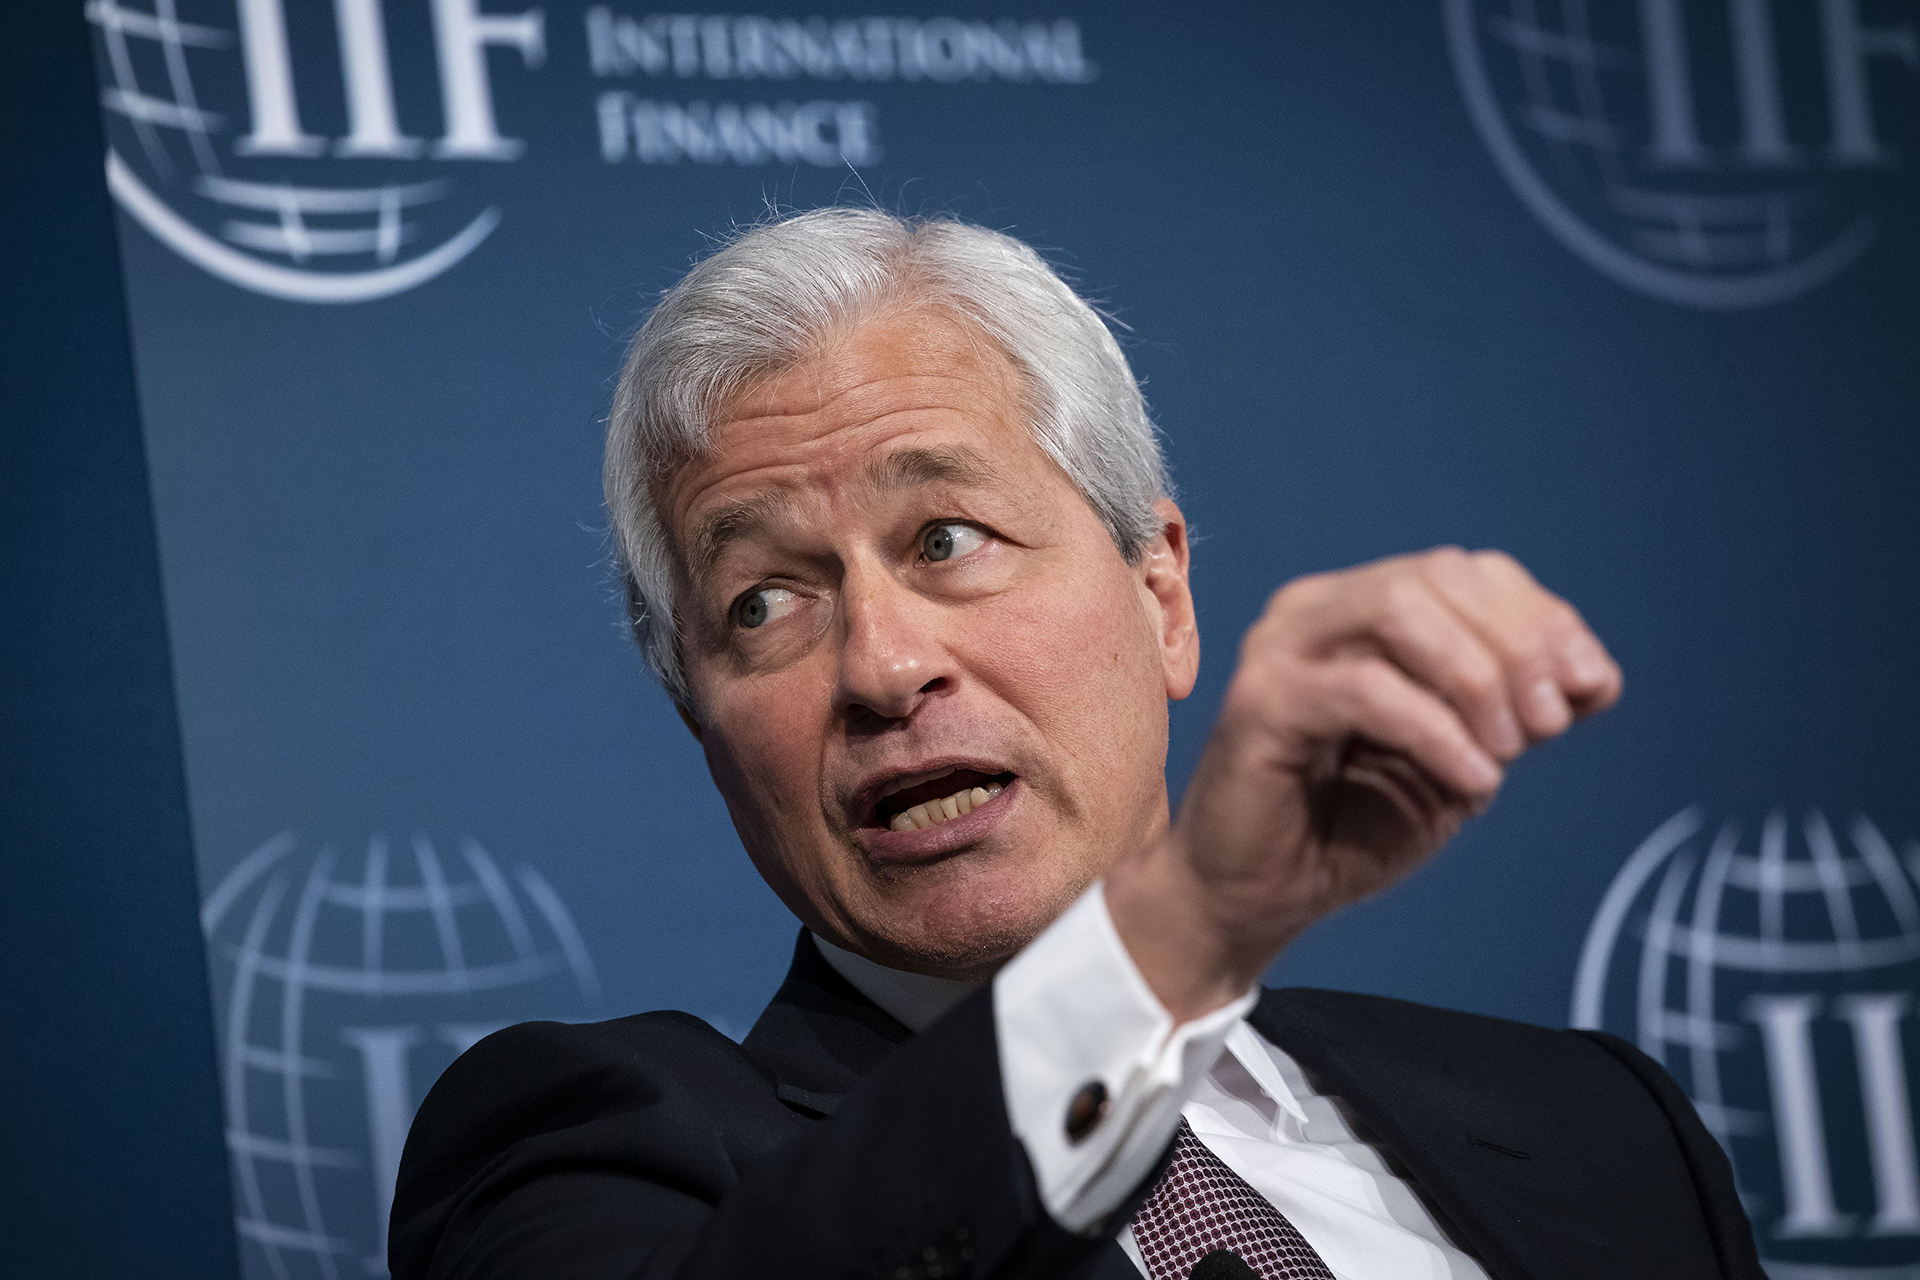 """JPMorgan CEO on getting into bitcoin: """"You shouldn't smoke cigarettes either"""""""